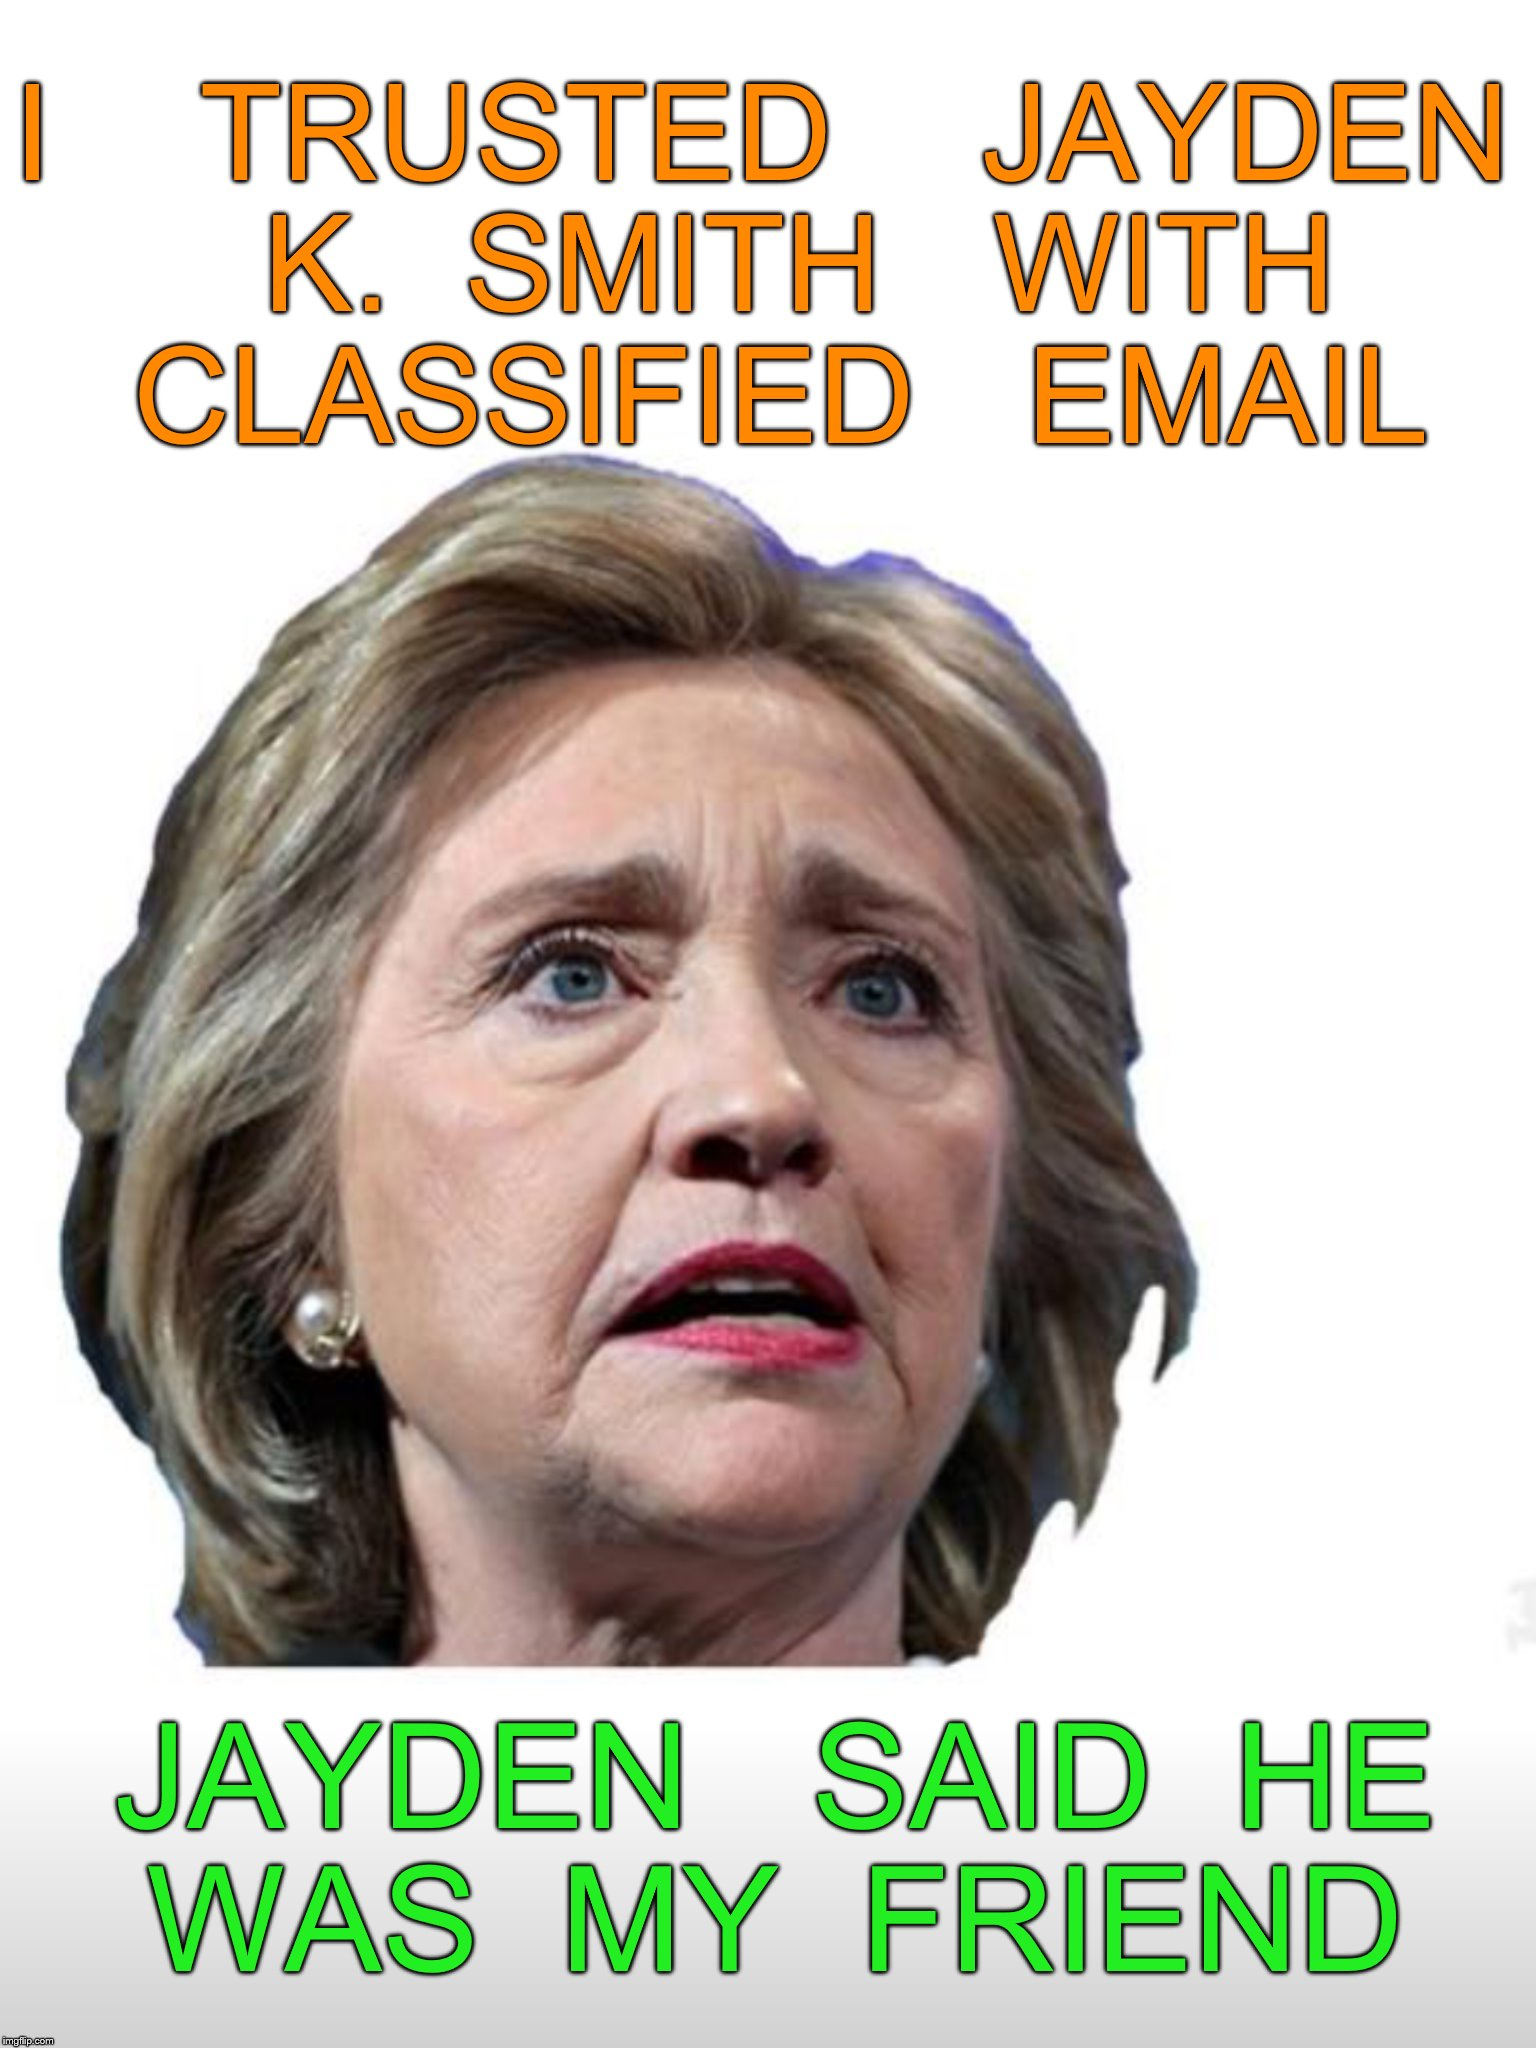 true friends are hard to find | I    TRUSTED    JAYDEN  K.  SMITH   WITH  CLASSIFIED   EMAIL JAYDEN   SAID  HE  WAS  MY  FRIEND | image tagged in hillary emails | made w/ Imgflip meme maker